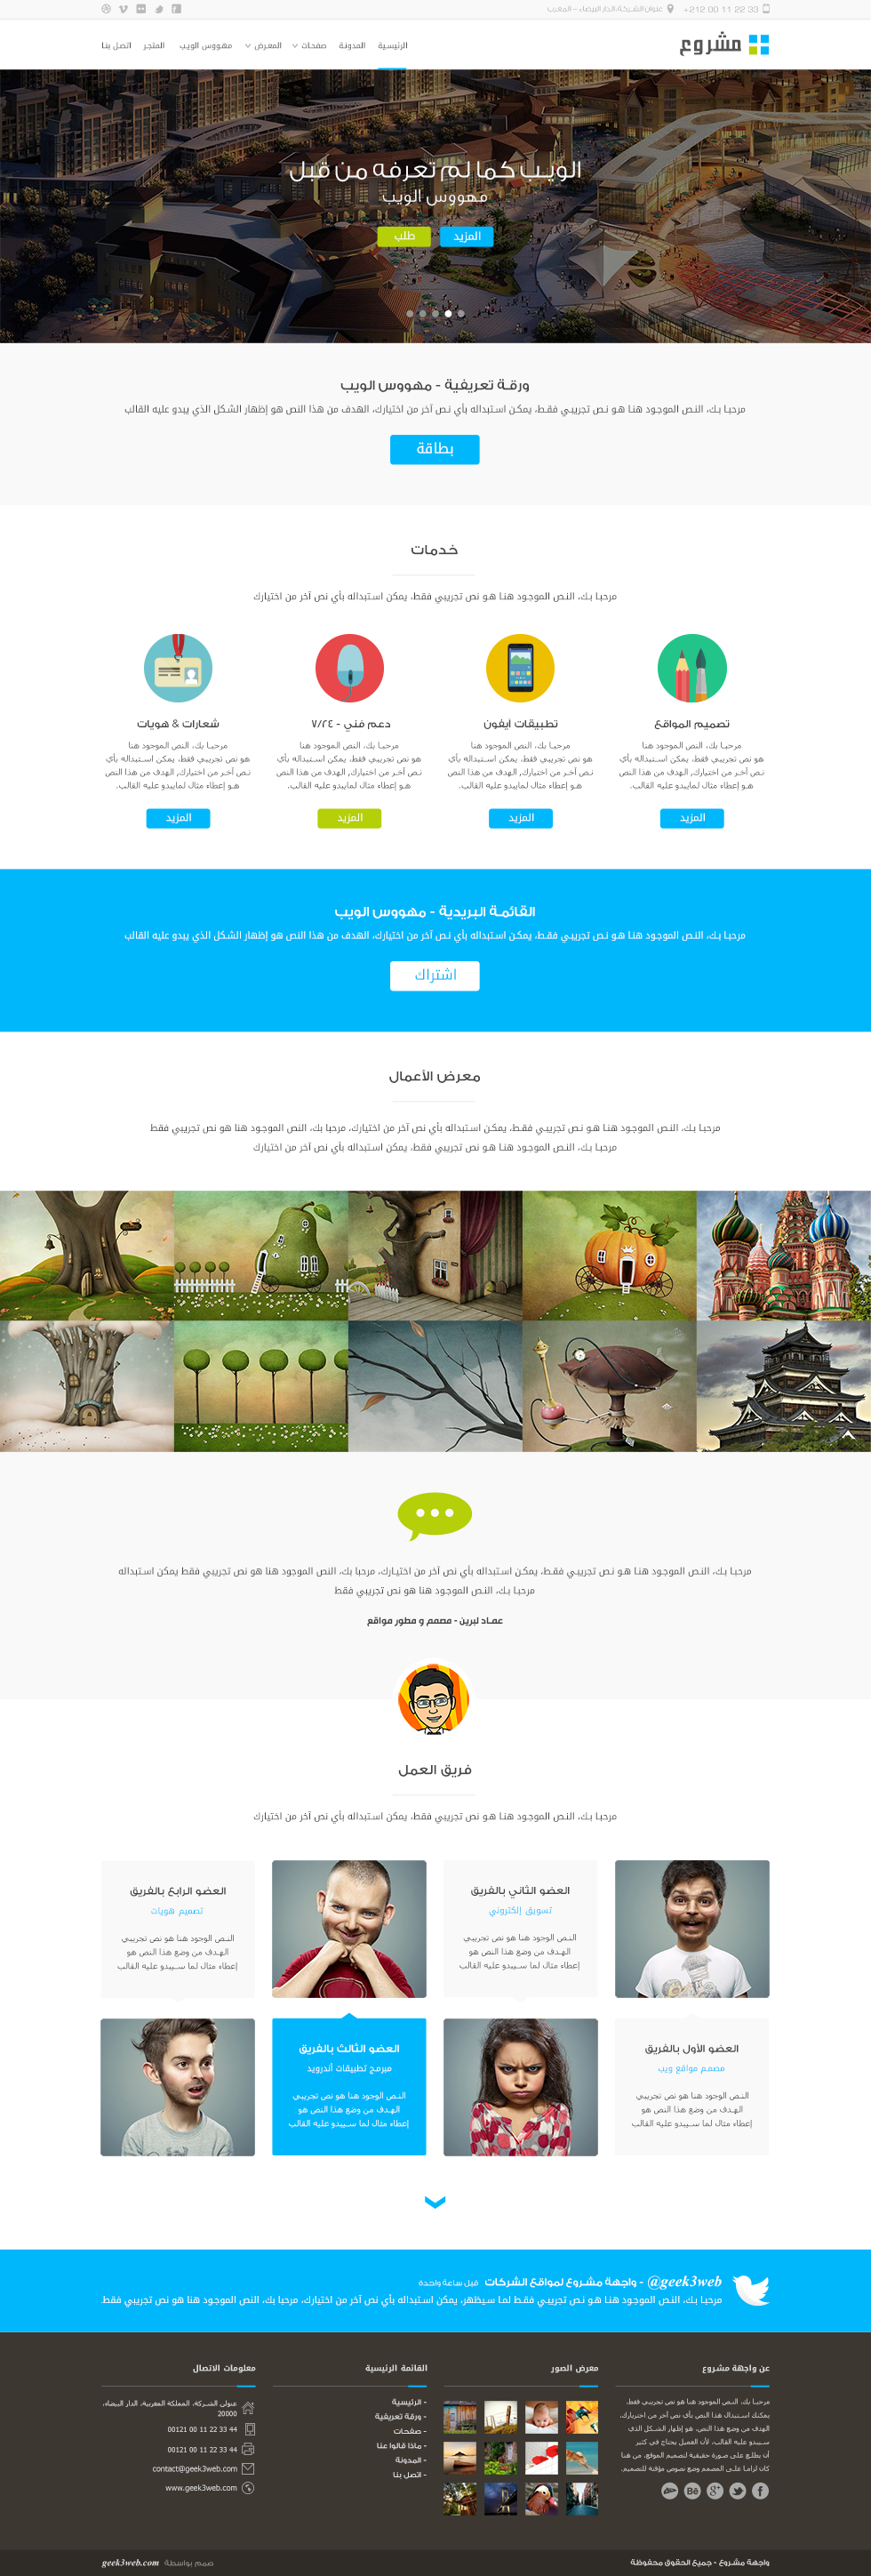 Machro3 Is A Clean And Minimal One Page Website Design For Landing Pages Creative Corporate